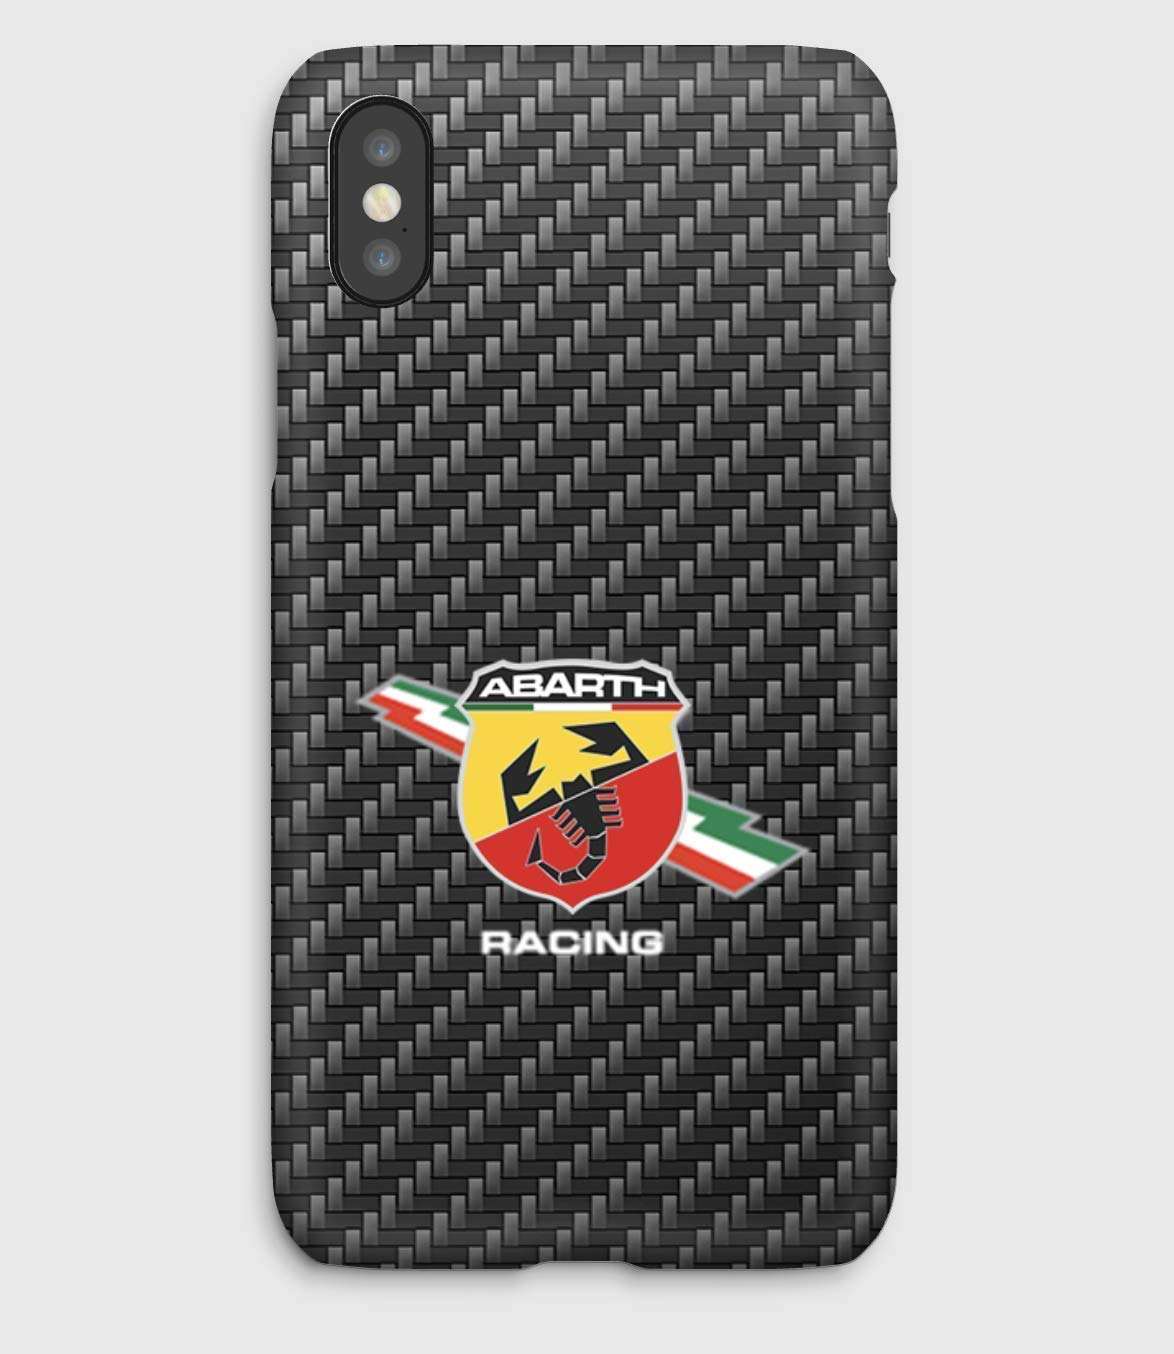 500 Abarth, Cover iPhone X,XS,XS Max,XR, 8, 8+, 7, 7+, 6S, 6, 6S+, 6+, 5C, 5, 5S, 5SE, 4S, 4,